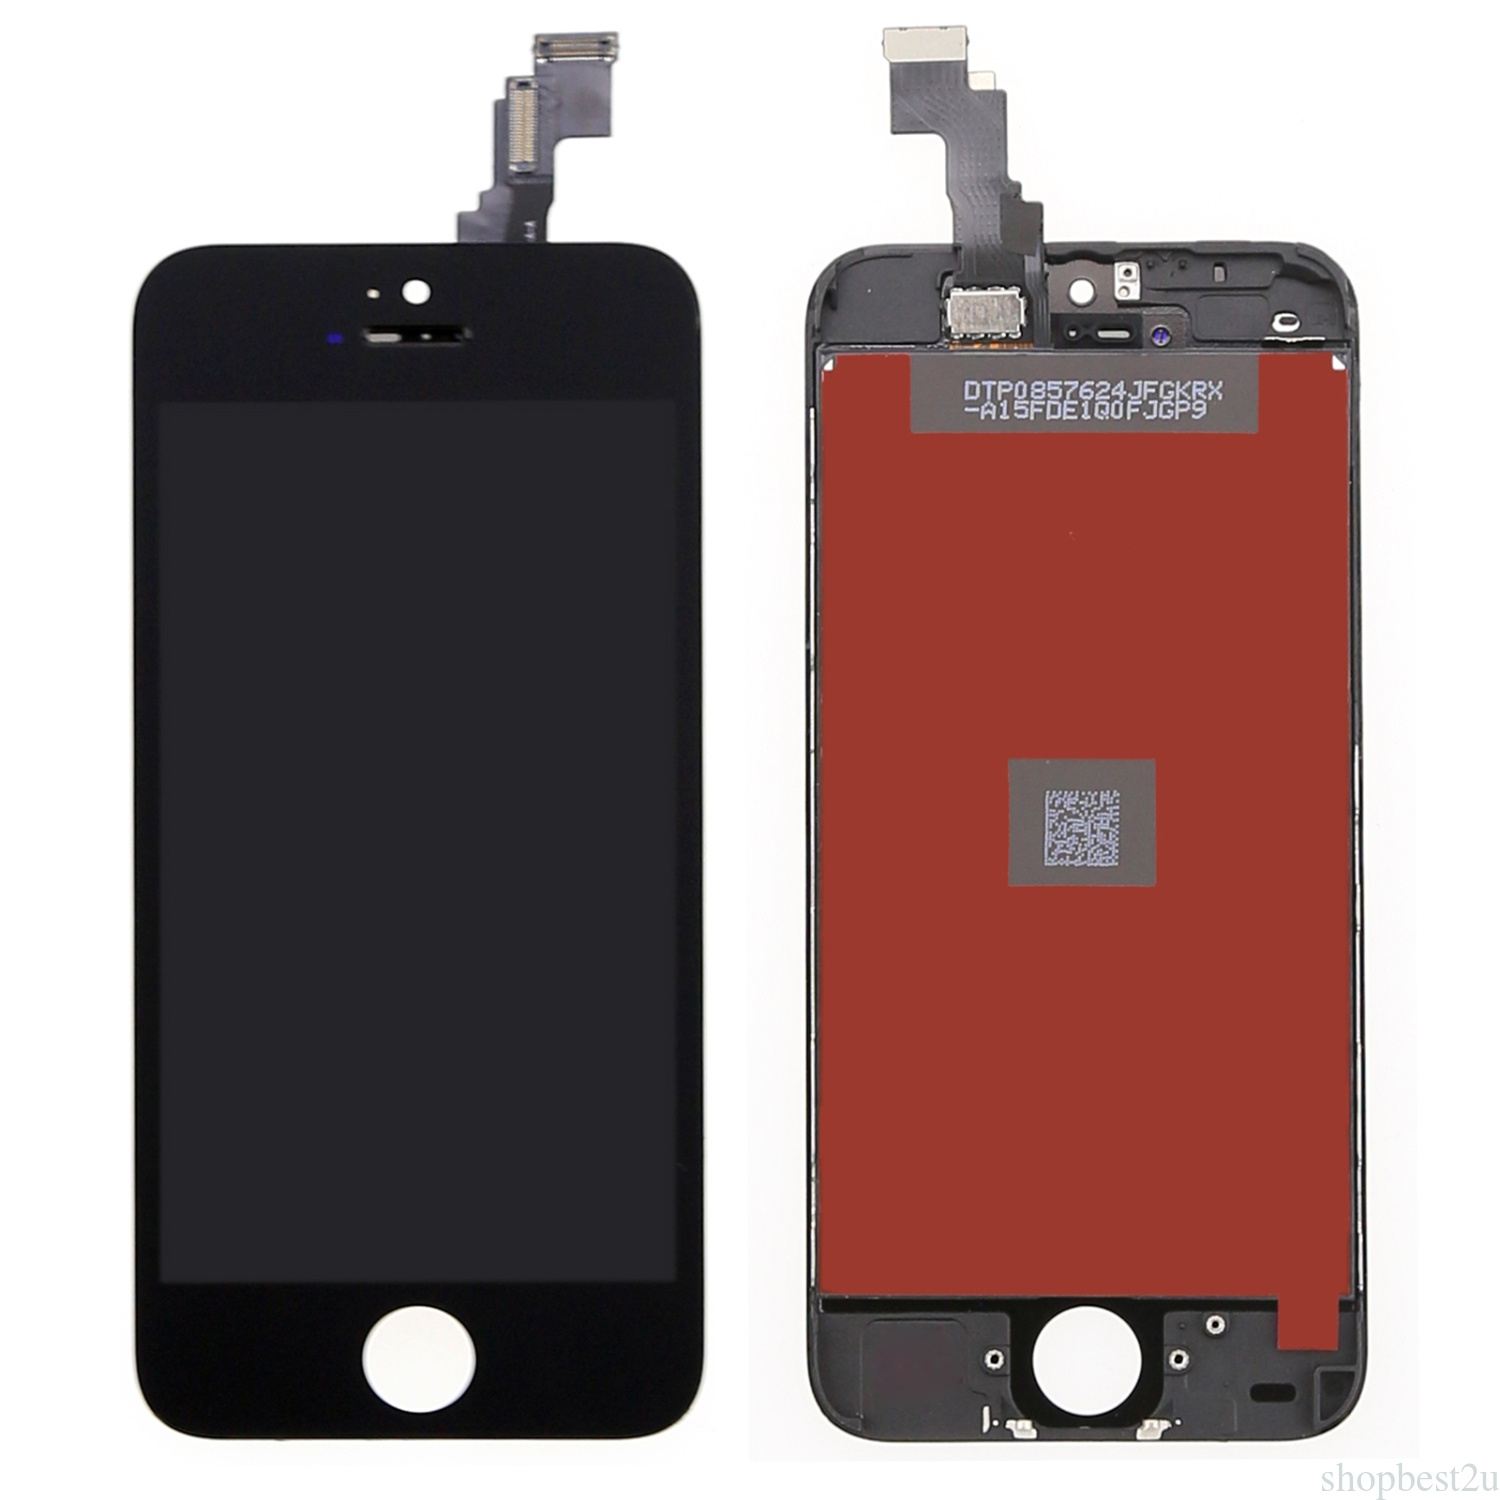 iphone 5c replacement screen black touch screen digitizer panel lcd display assembly 14694